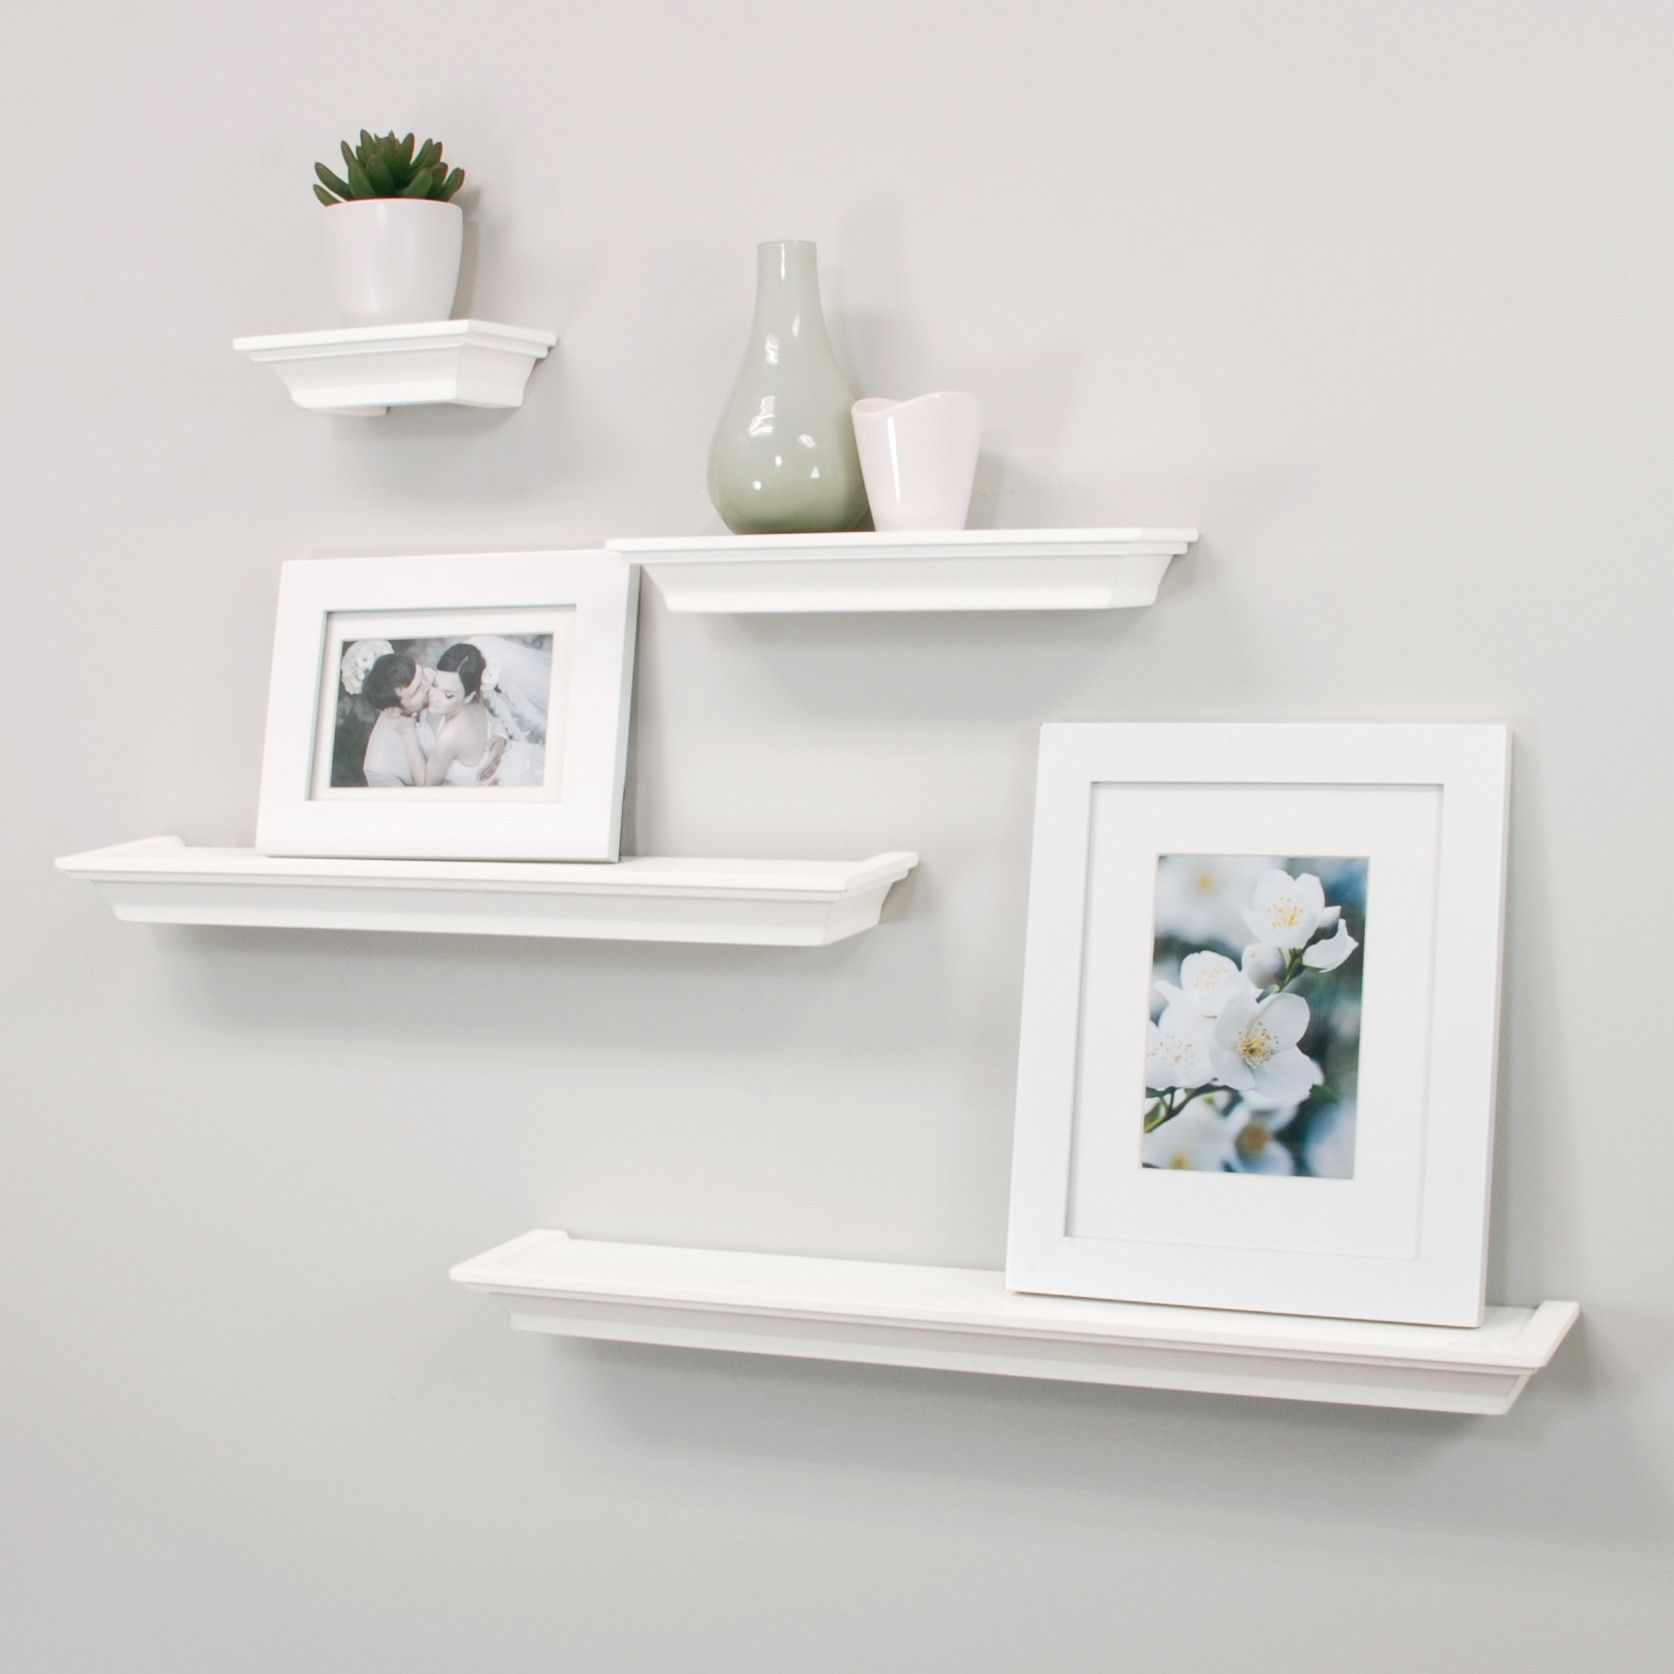 Melannco Floating Shelves Impressive Features Set Of Four Contoured Ledge Style Shelvingvarious Inspiration Design